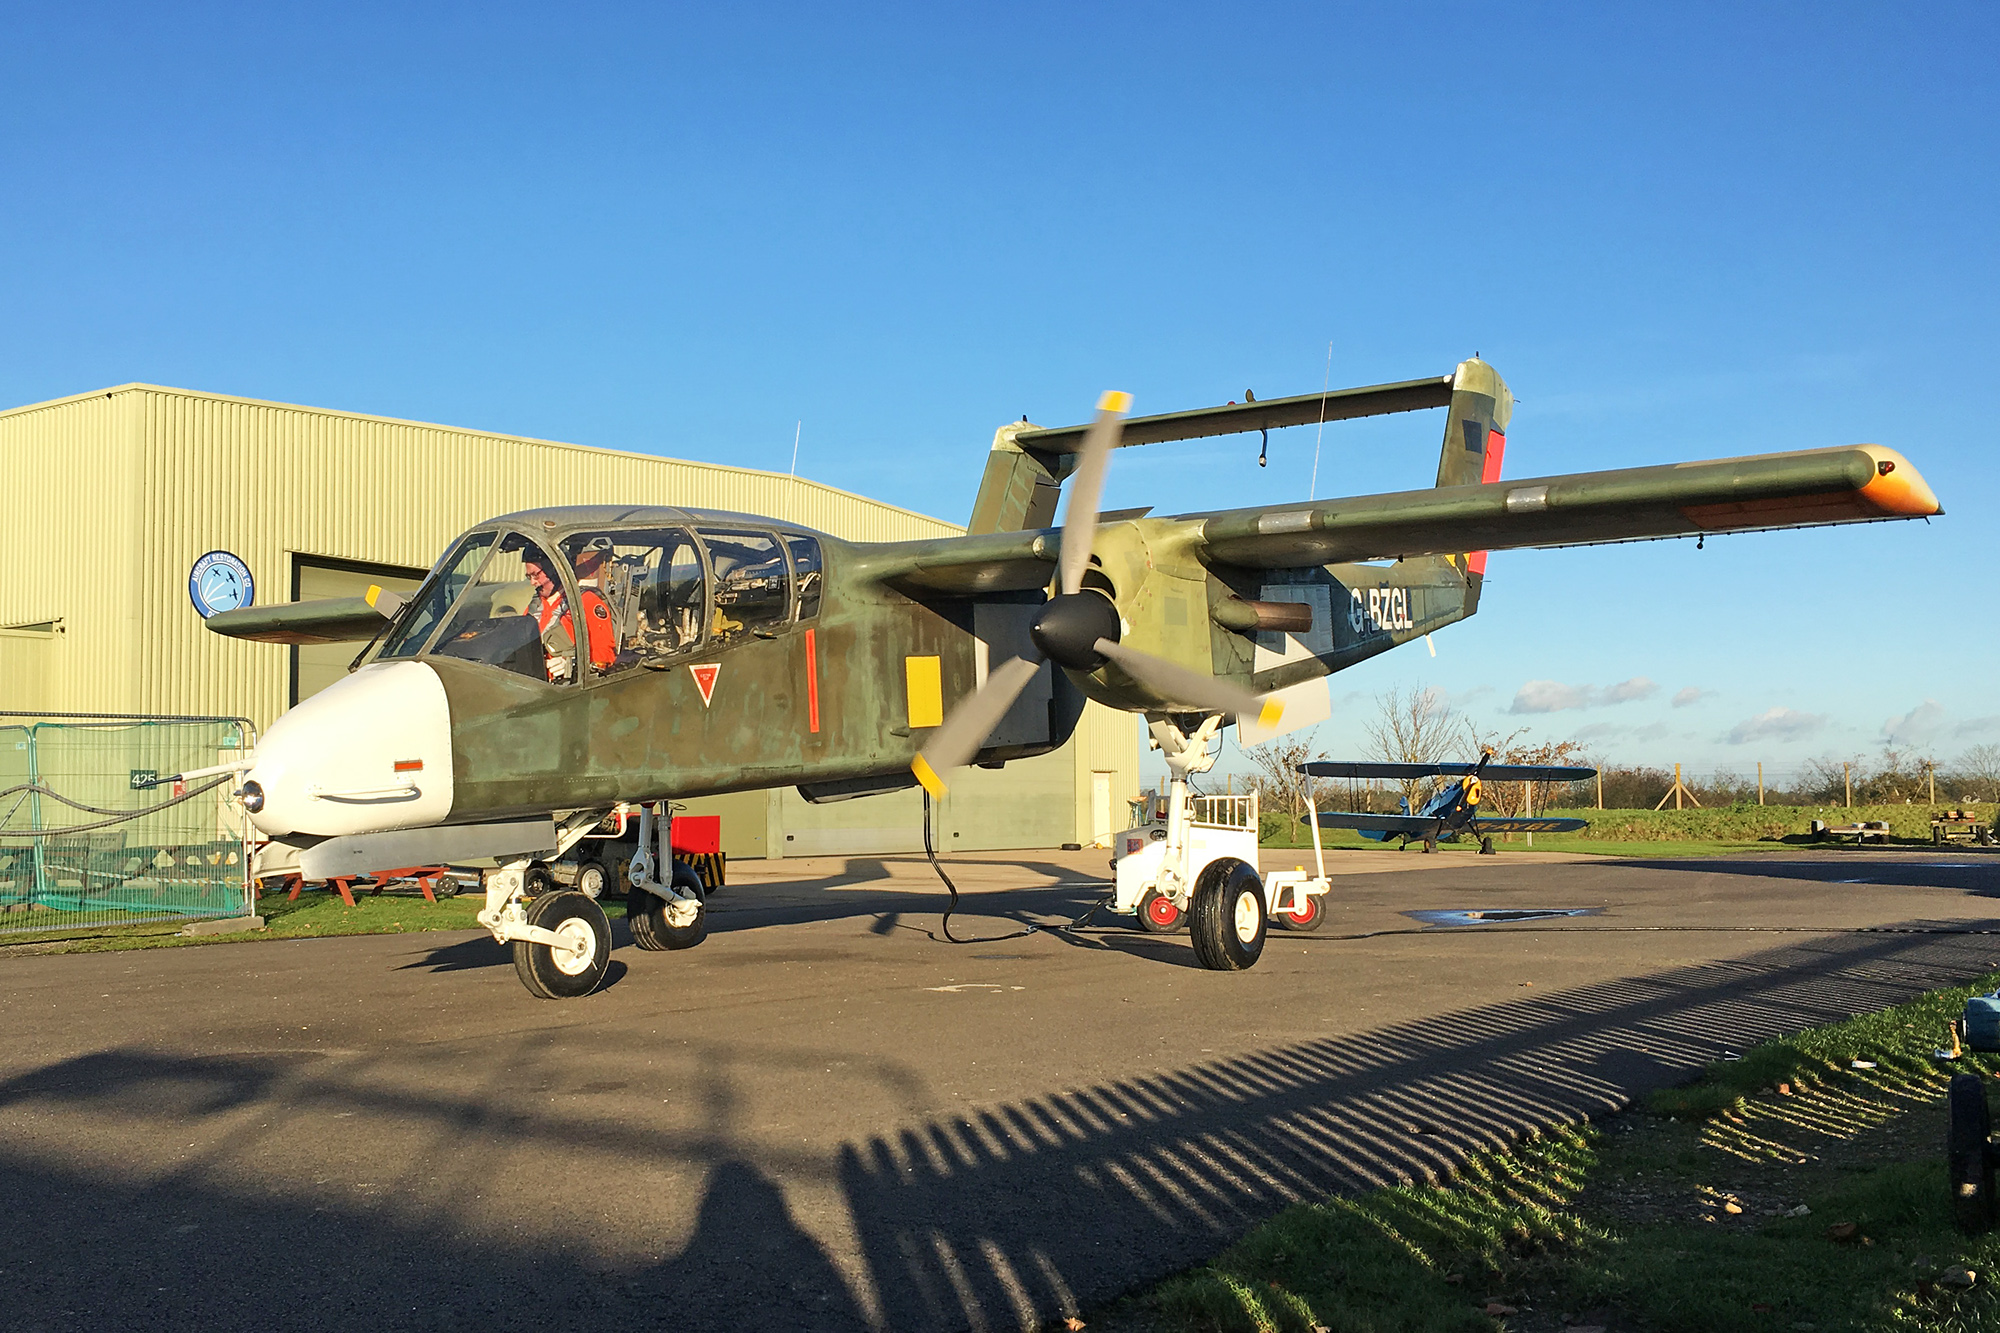 The first post-restoration flight of OV-10B 99+26 which took place last Wednesday at Duxford. (Photograph by Jessie De Cooman)